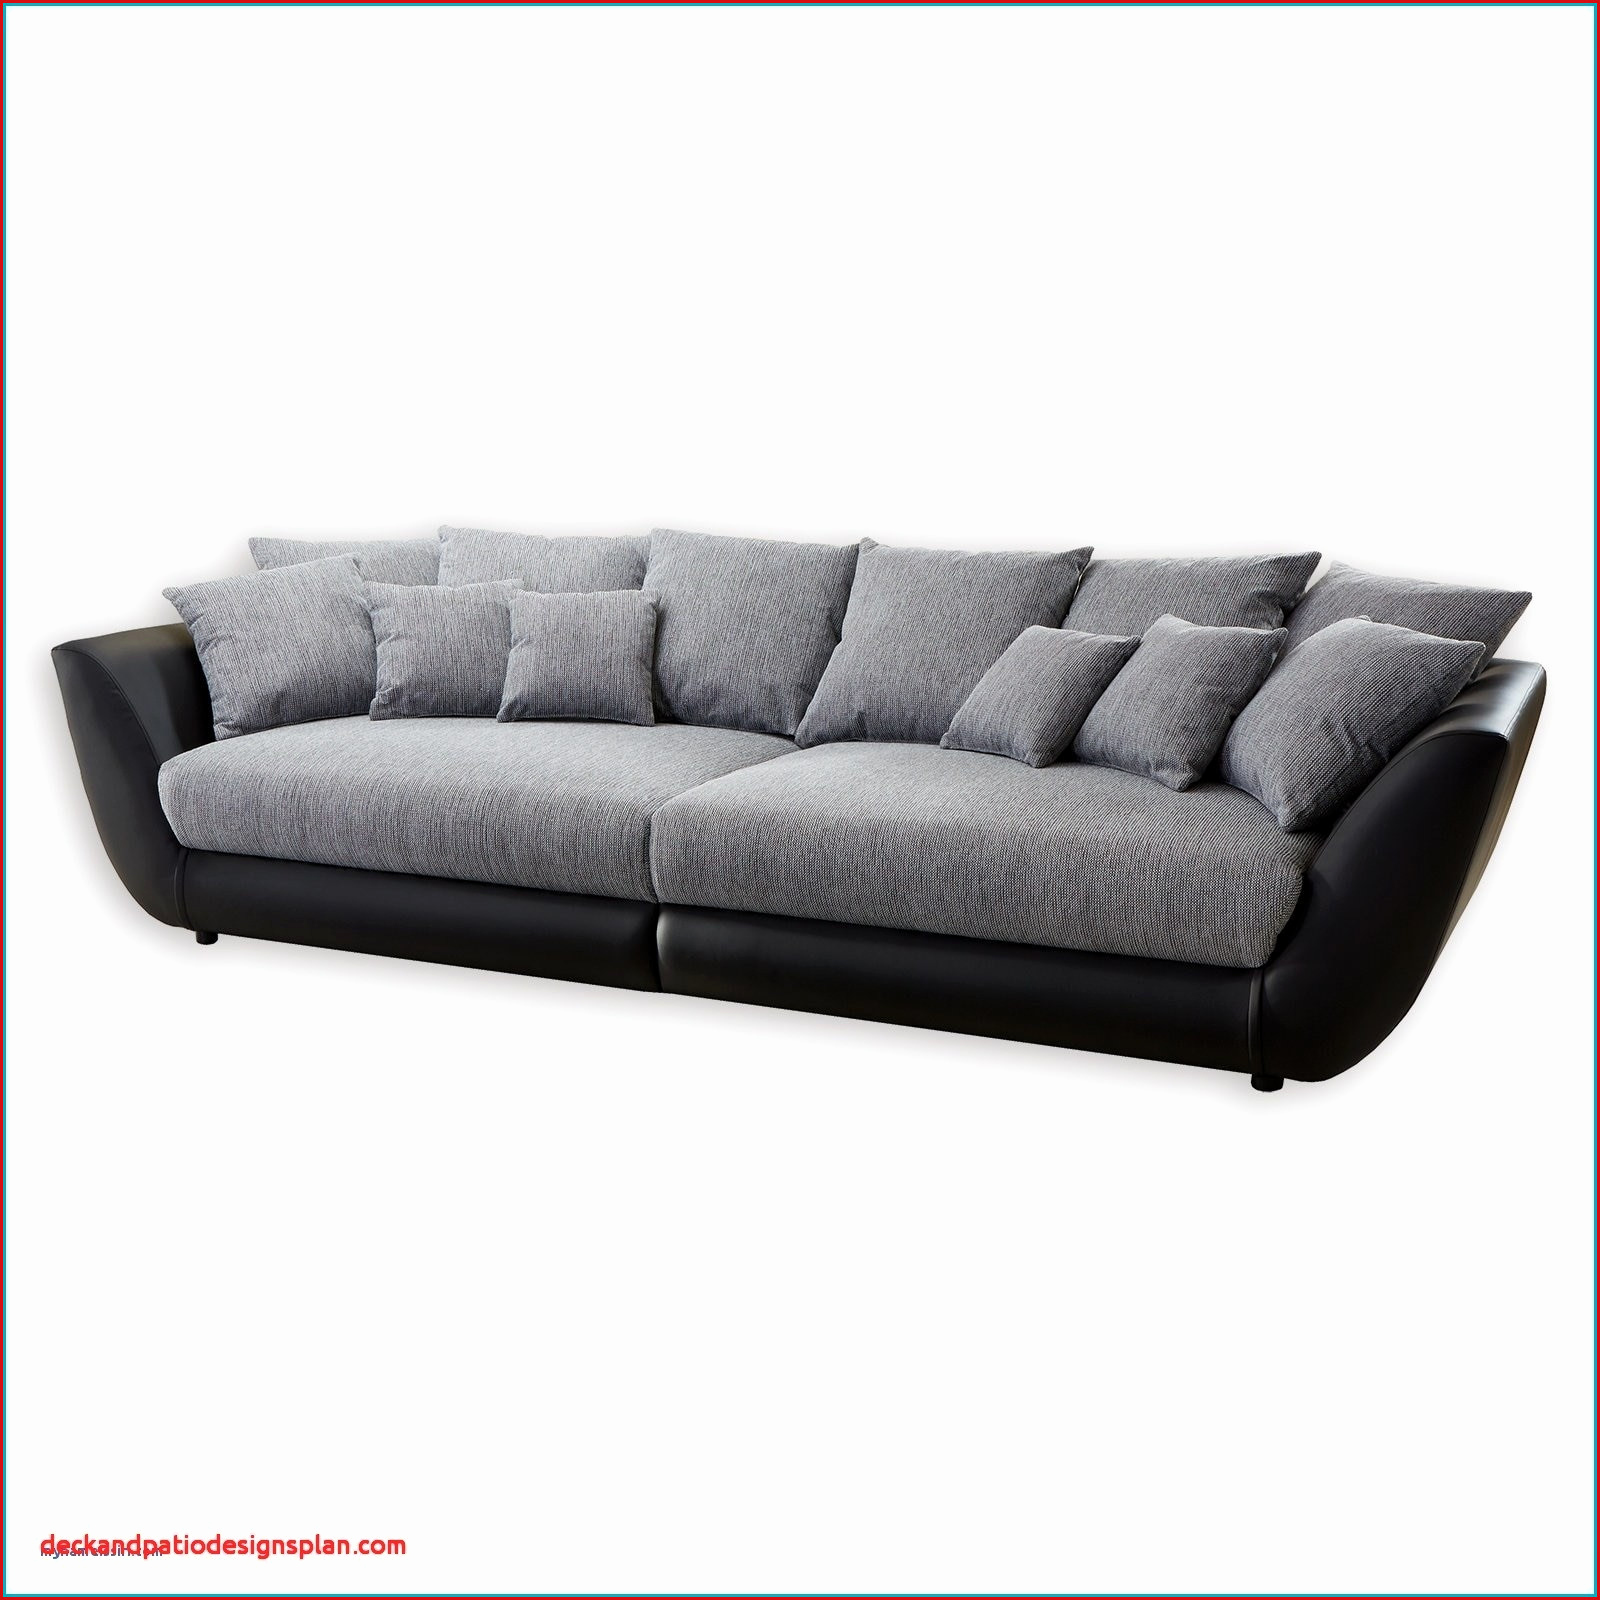 Home Affaire Schlafsofa Elegant Canape Home Cinema Canap Affaire Sacapuntasshow